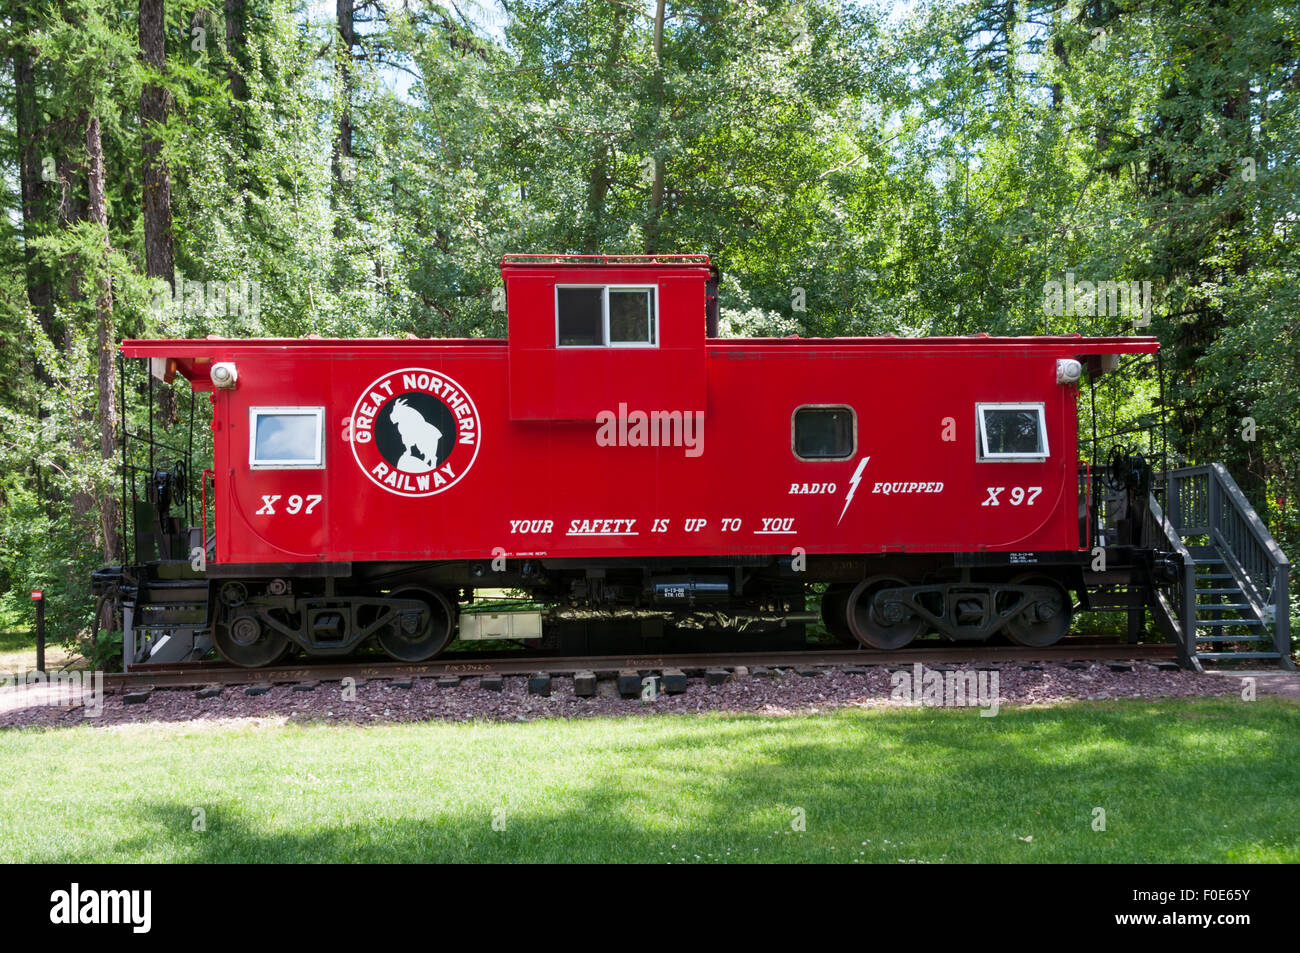 Caboose Lodging - restored old railway wagons used for accommodation at Izaak Walton Hotel near Glacier National - Stock Image